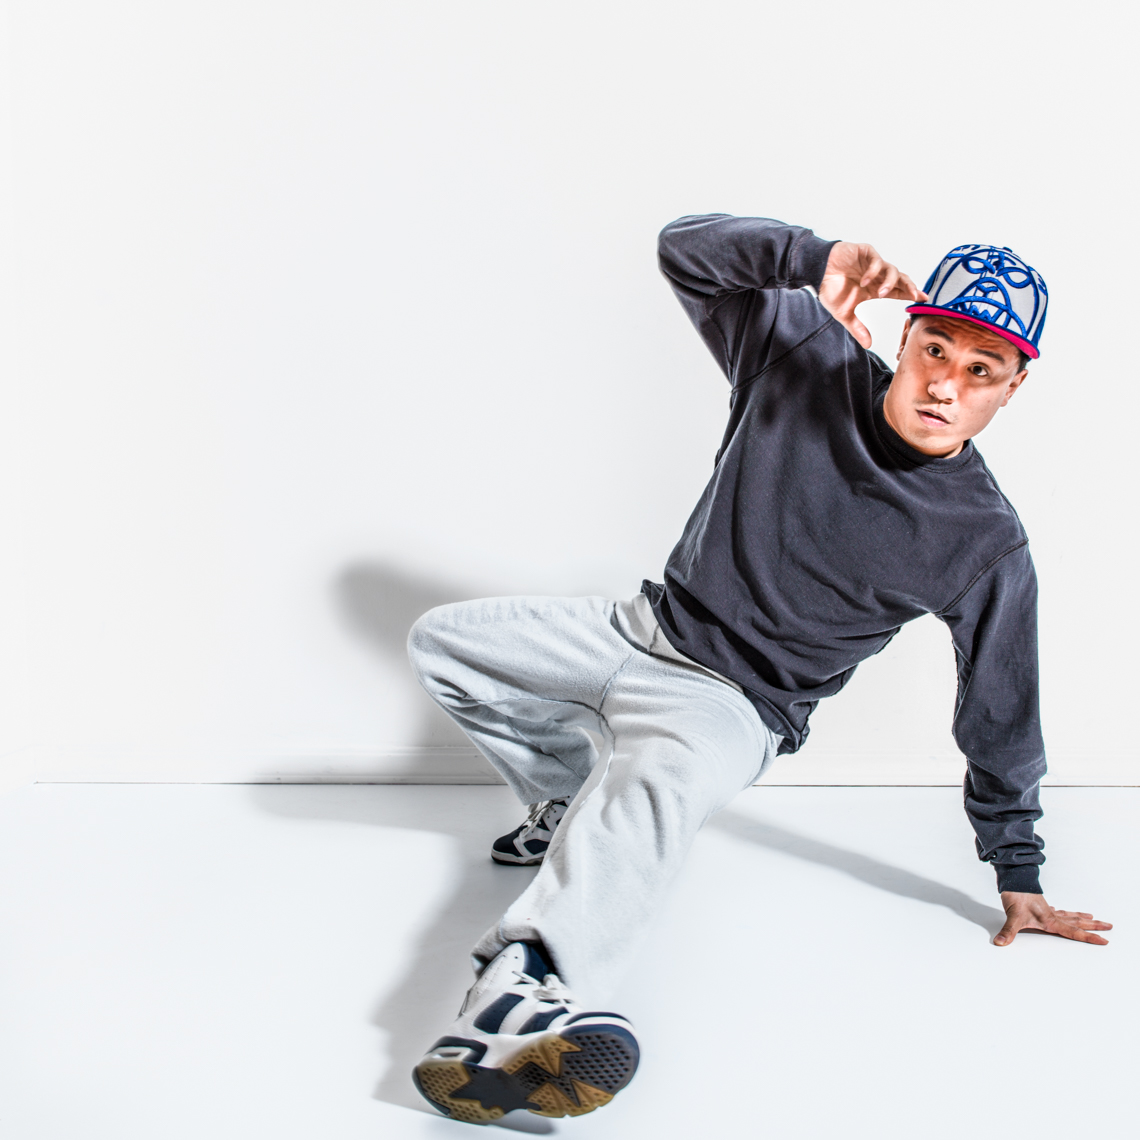 Christian, Breakdancer, Seattle, WA, USA